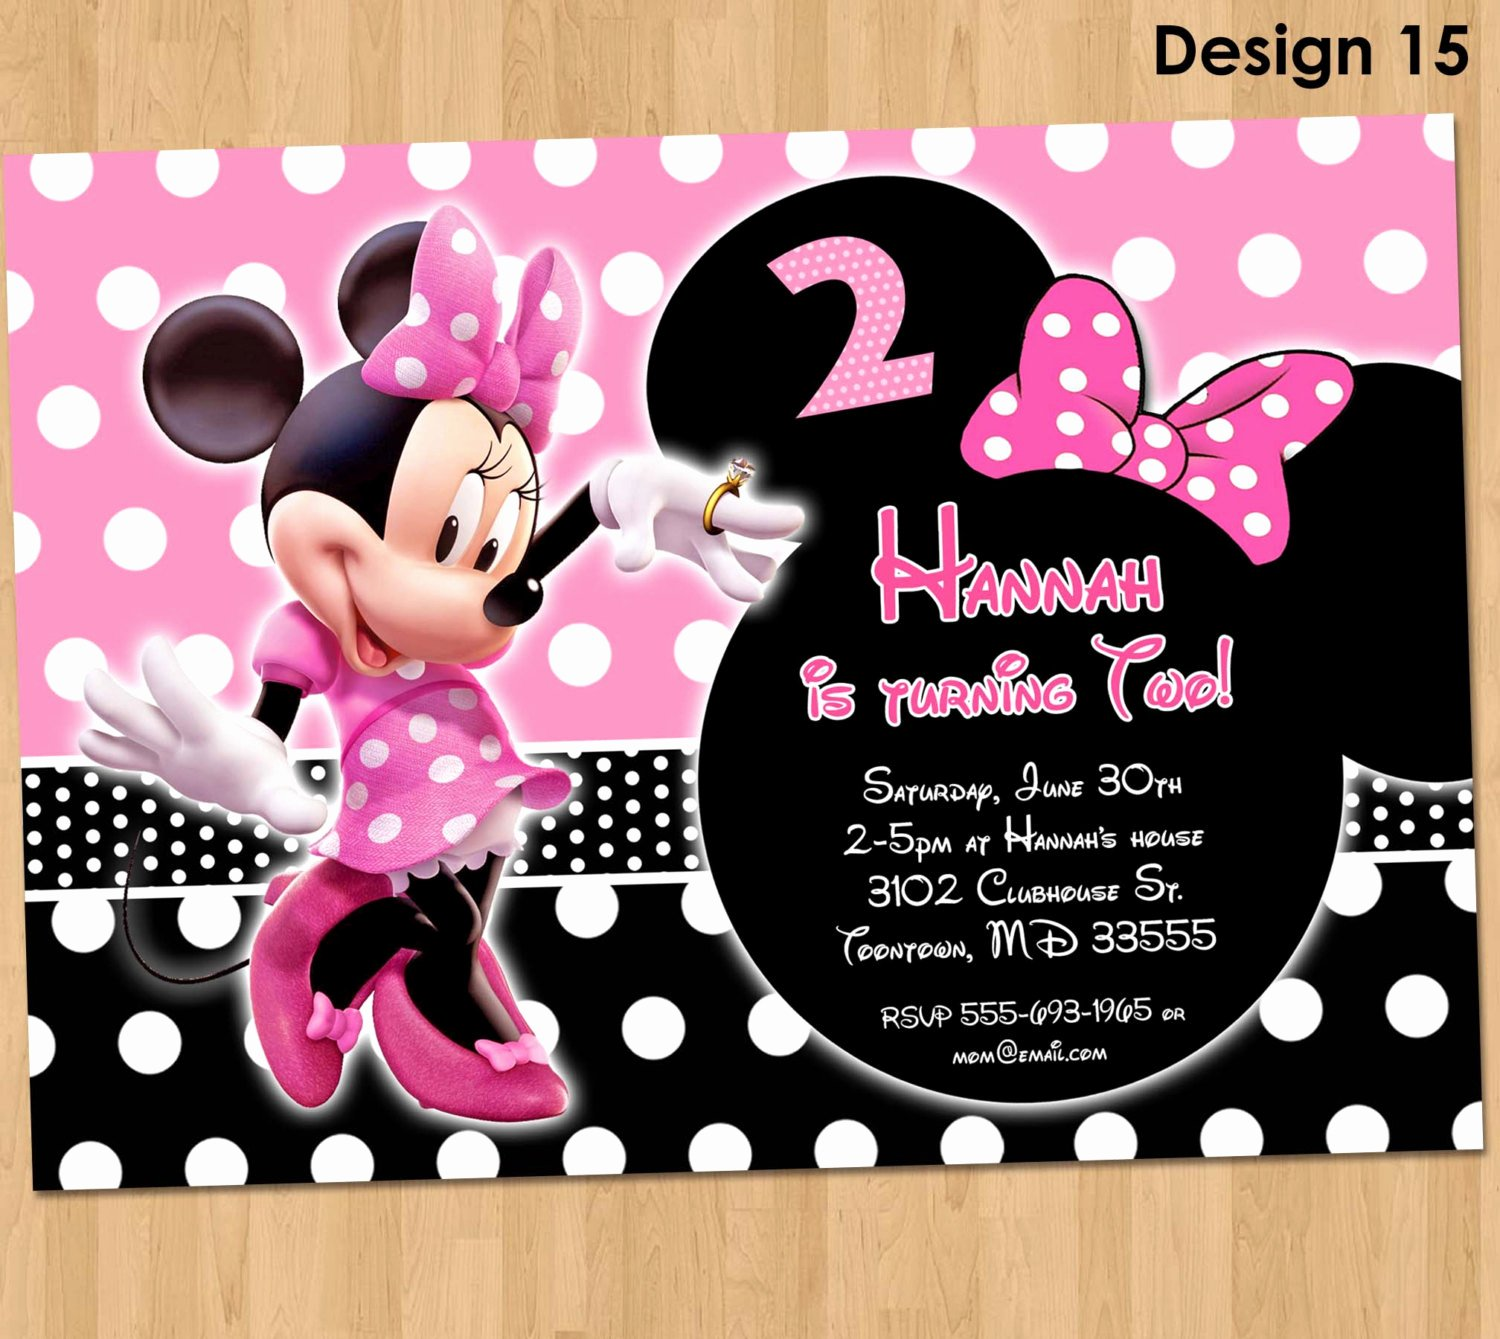 Minnie Mouse Personalized Invitations Unique Minnie Mouse Invitation Minnie Mouse Birthday Invitation